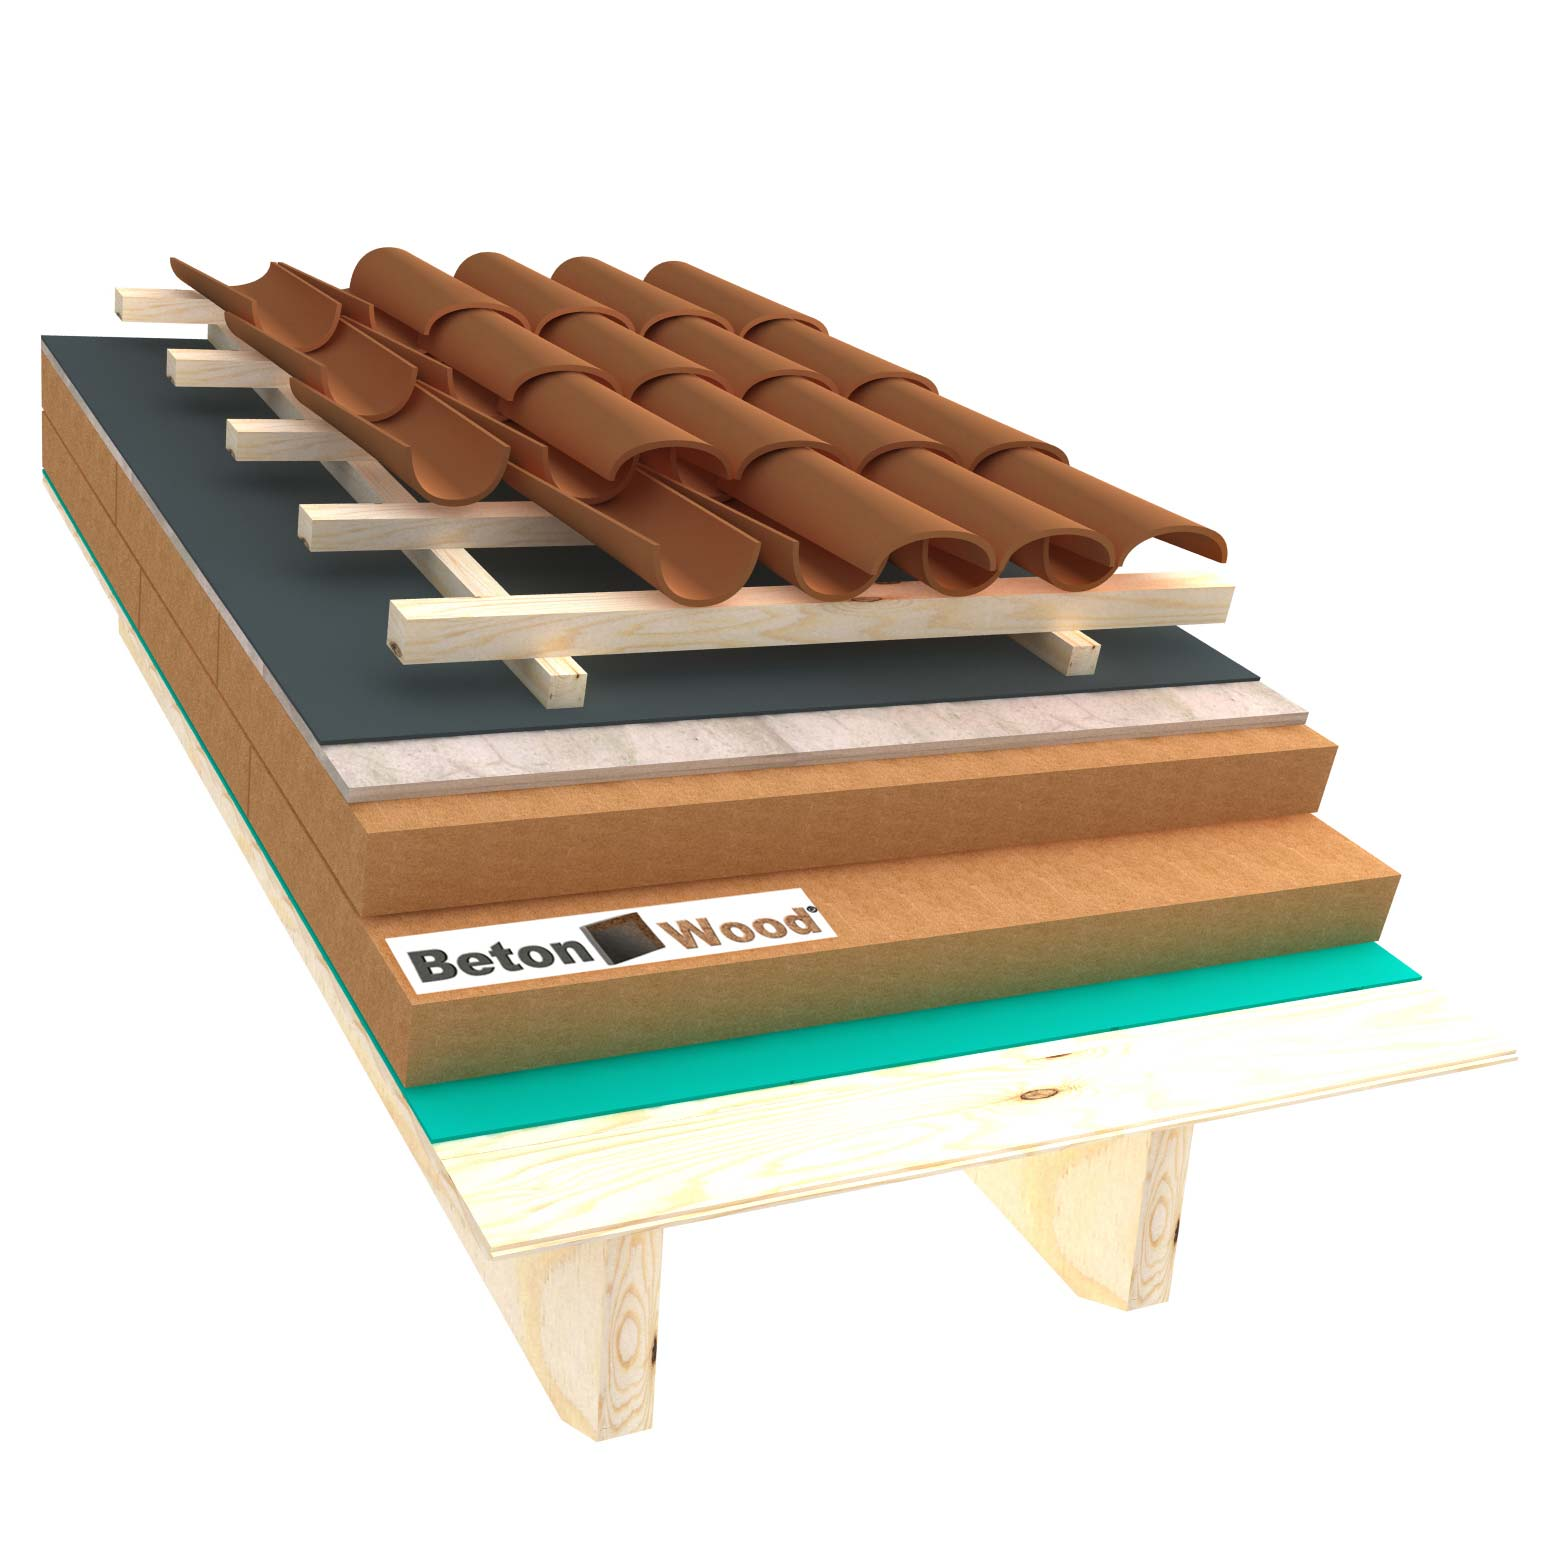 Ventilated roof with wood fiber Therm and cement bonded particle boards on matchboarding